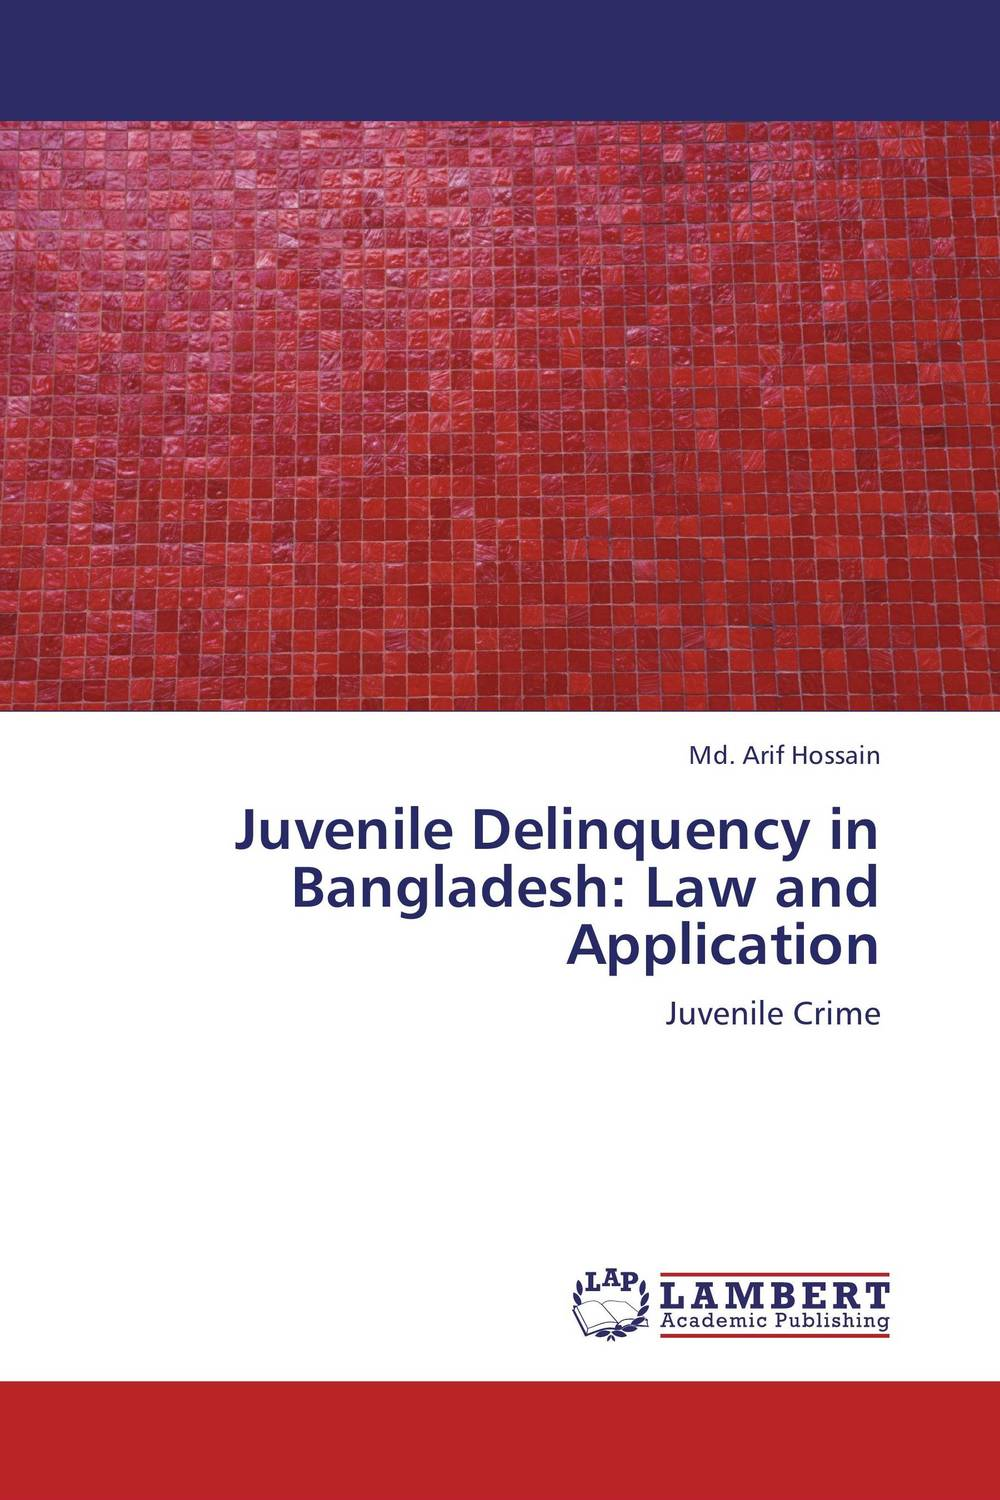 Juvenile Delinquency in Bangladesh: Law and Application breastfeeding knowledge in dhaka bangladesh